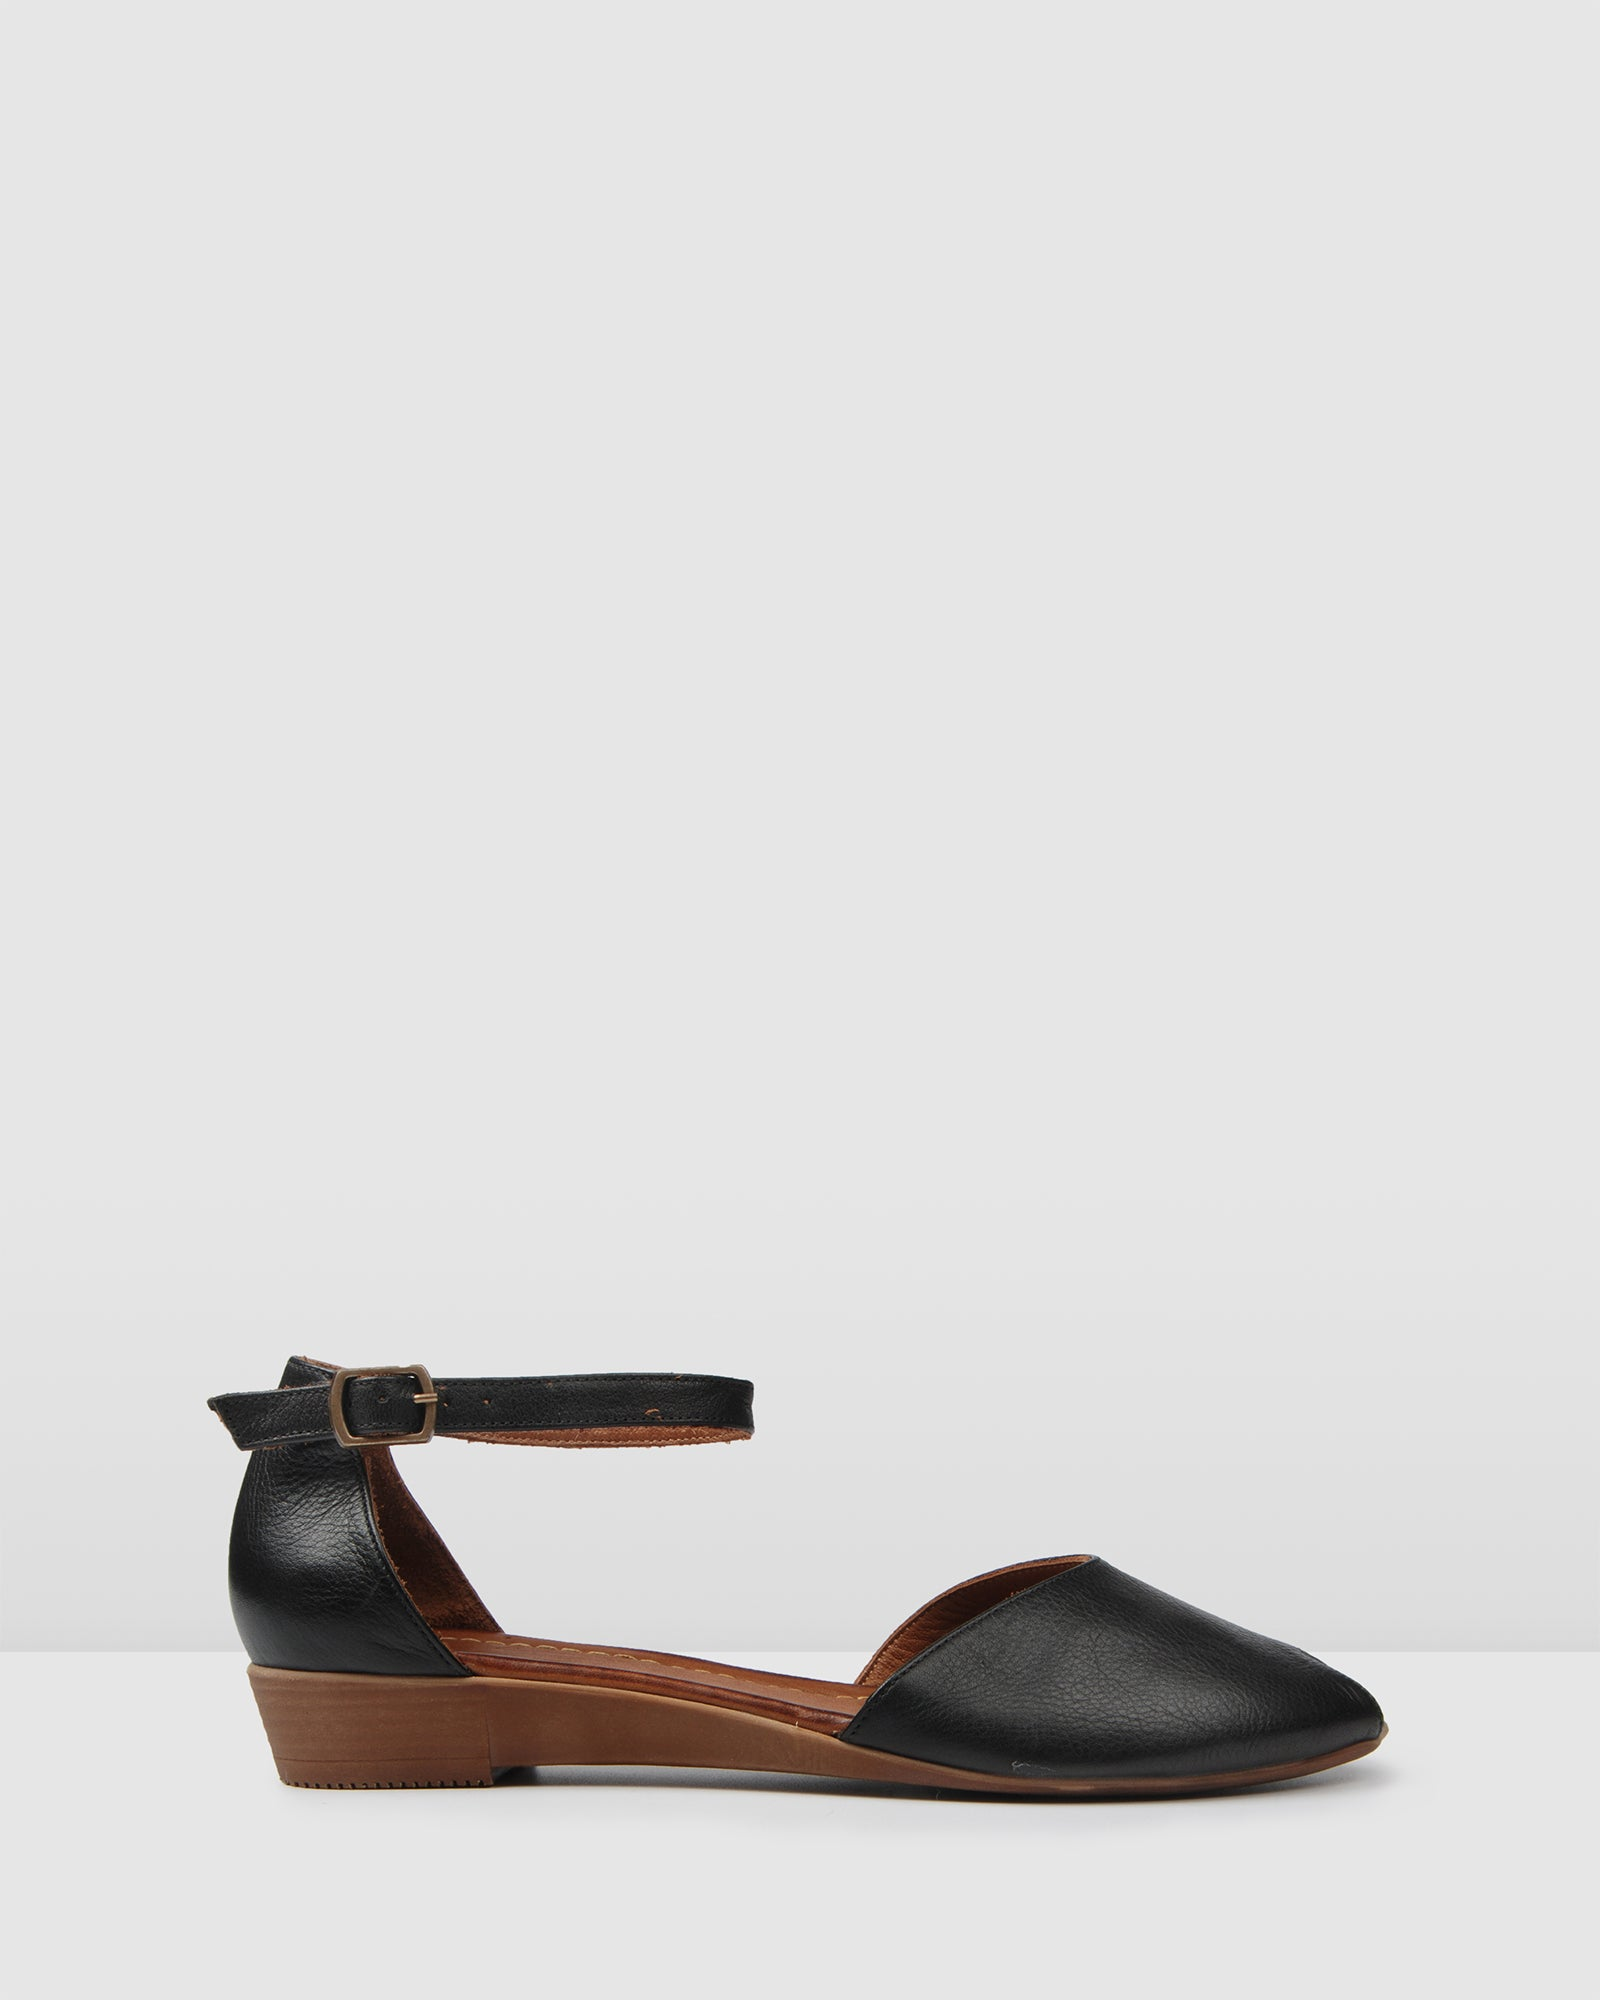 LEXIE FLAT WEDGE SANDALS BLACK LEATHER